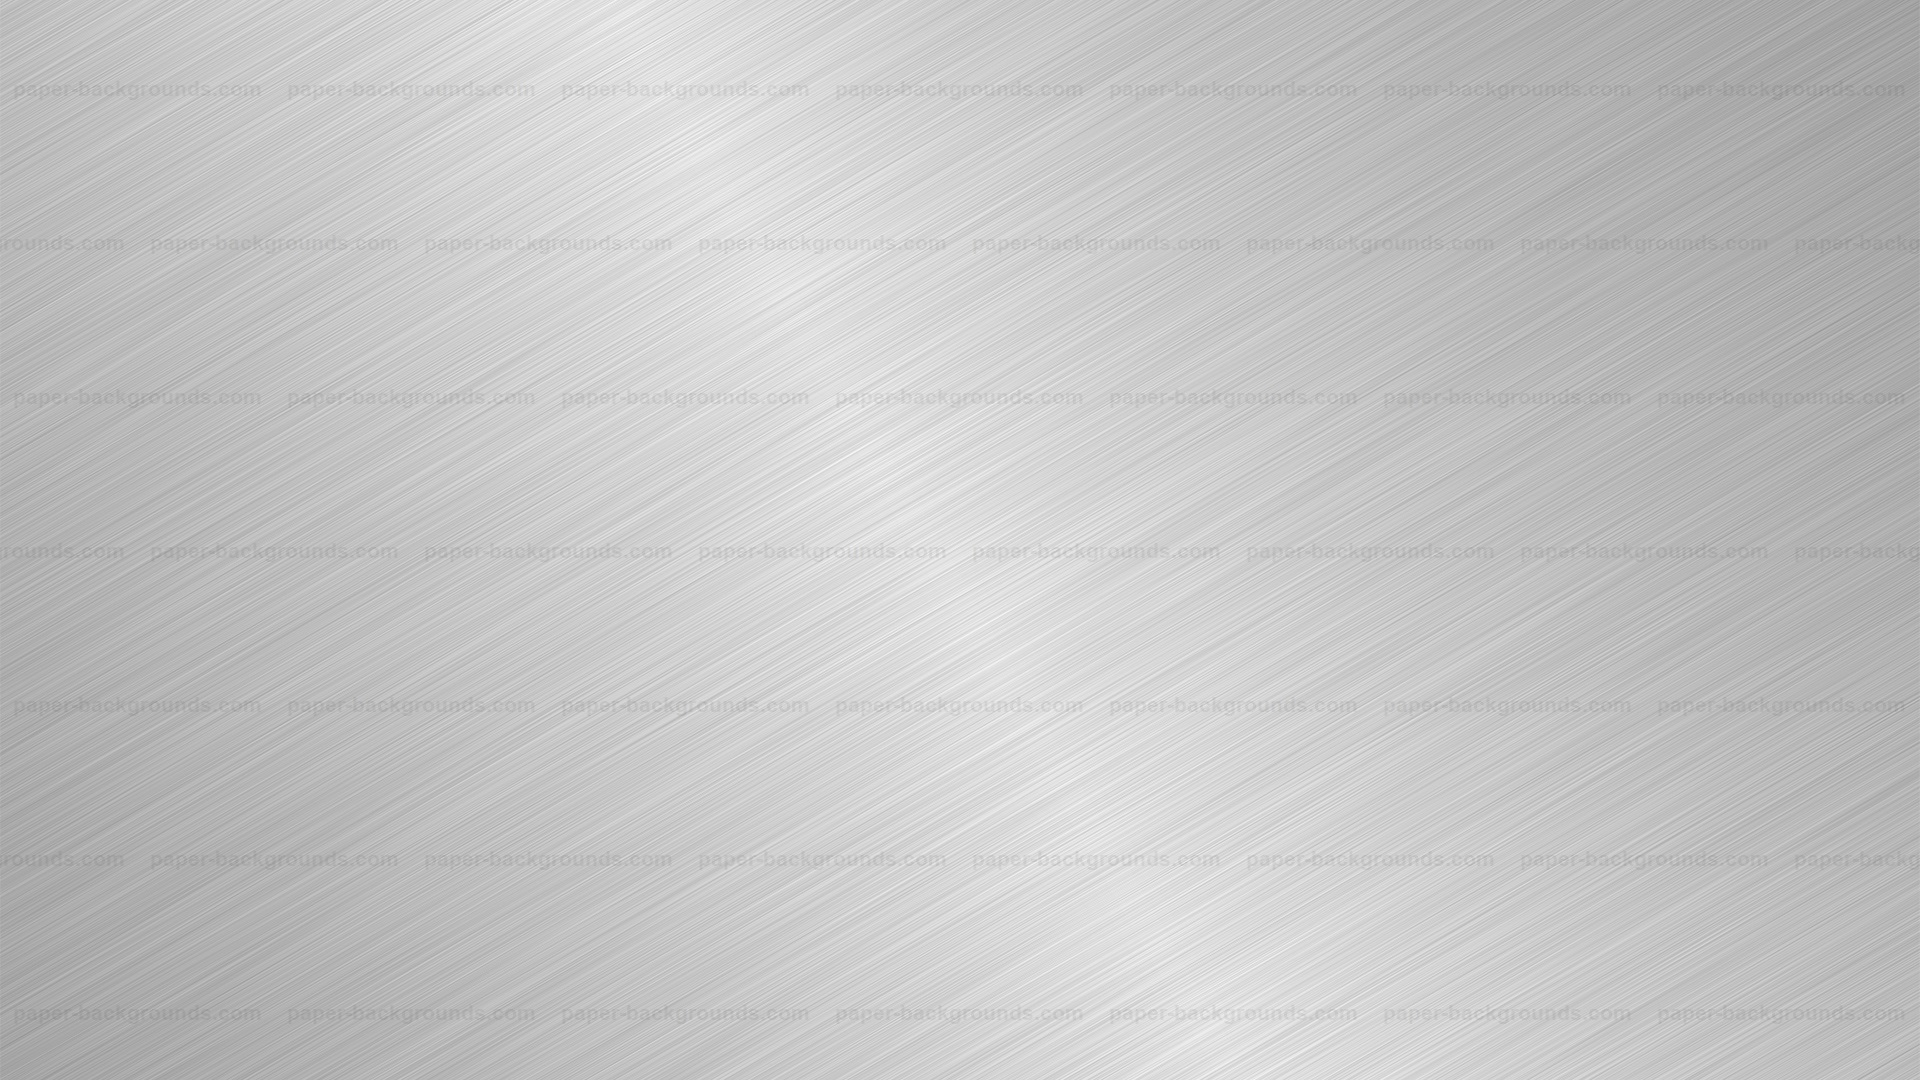 Aluminium Brushed Metal Background Texture HD